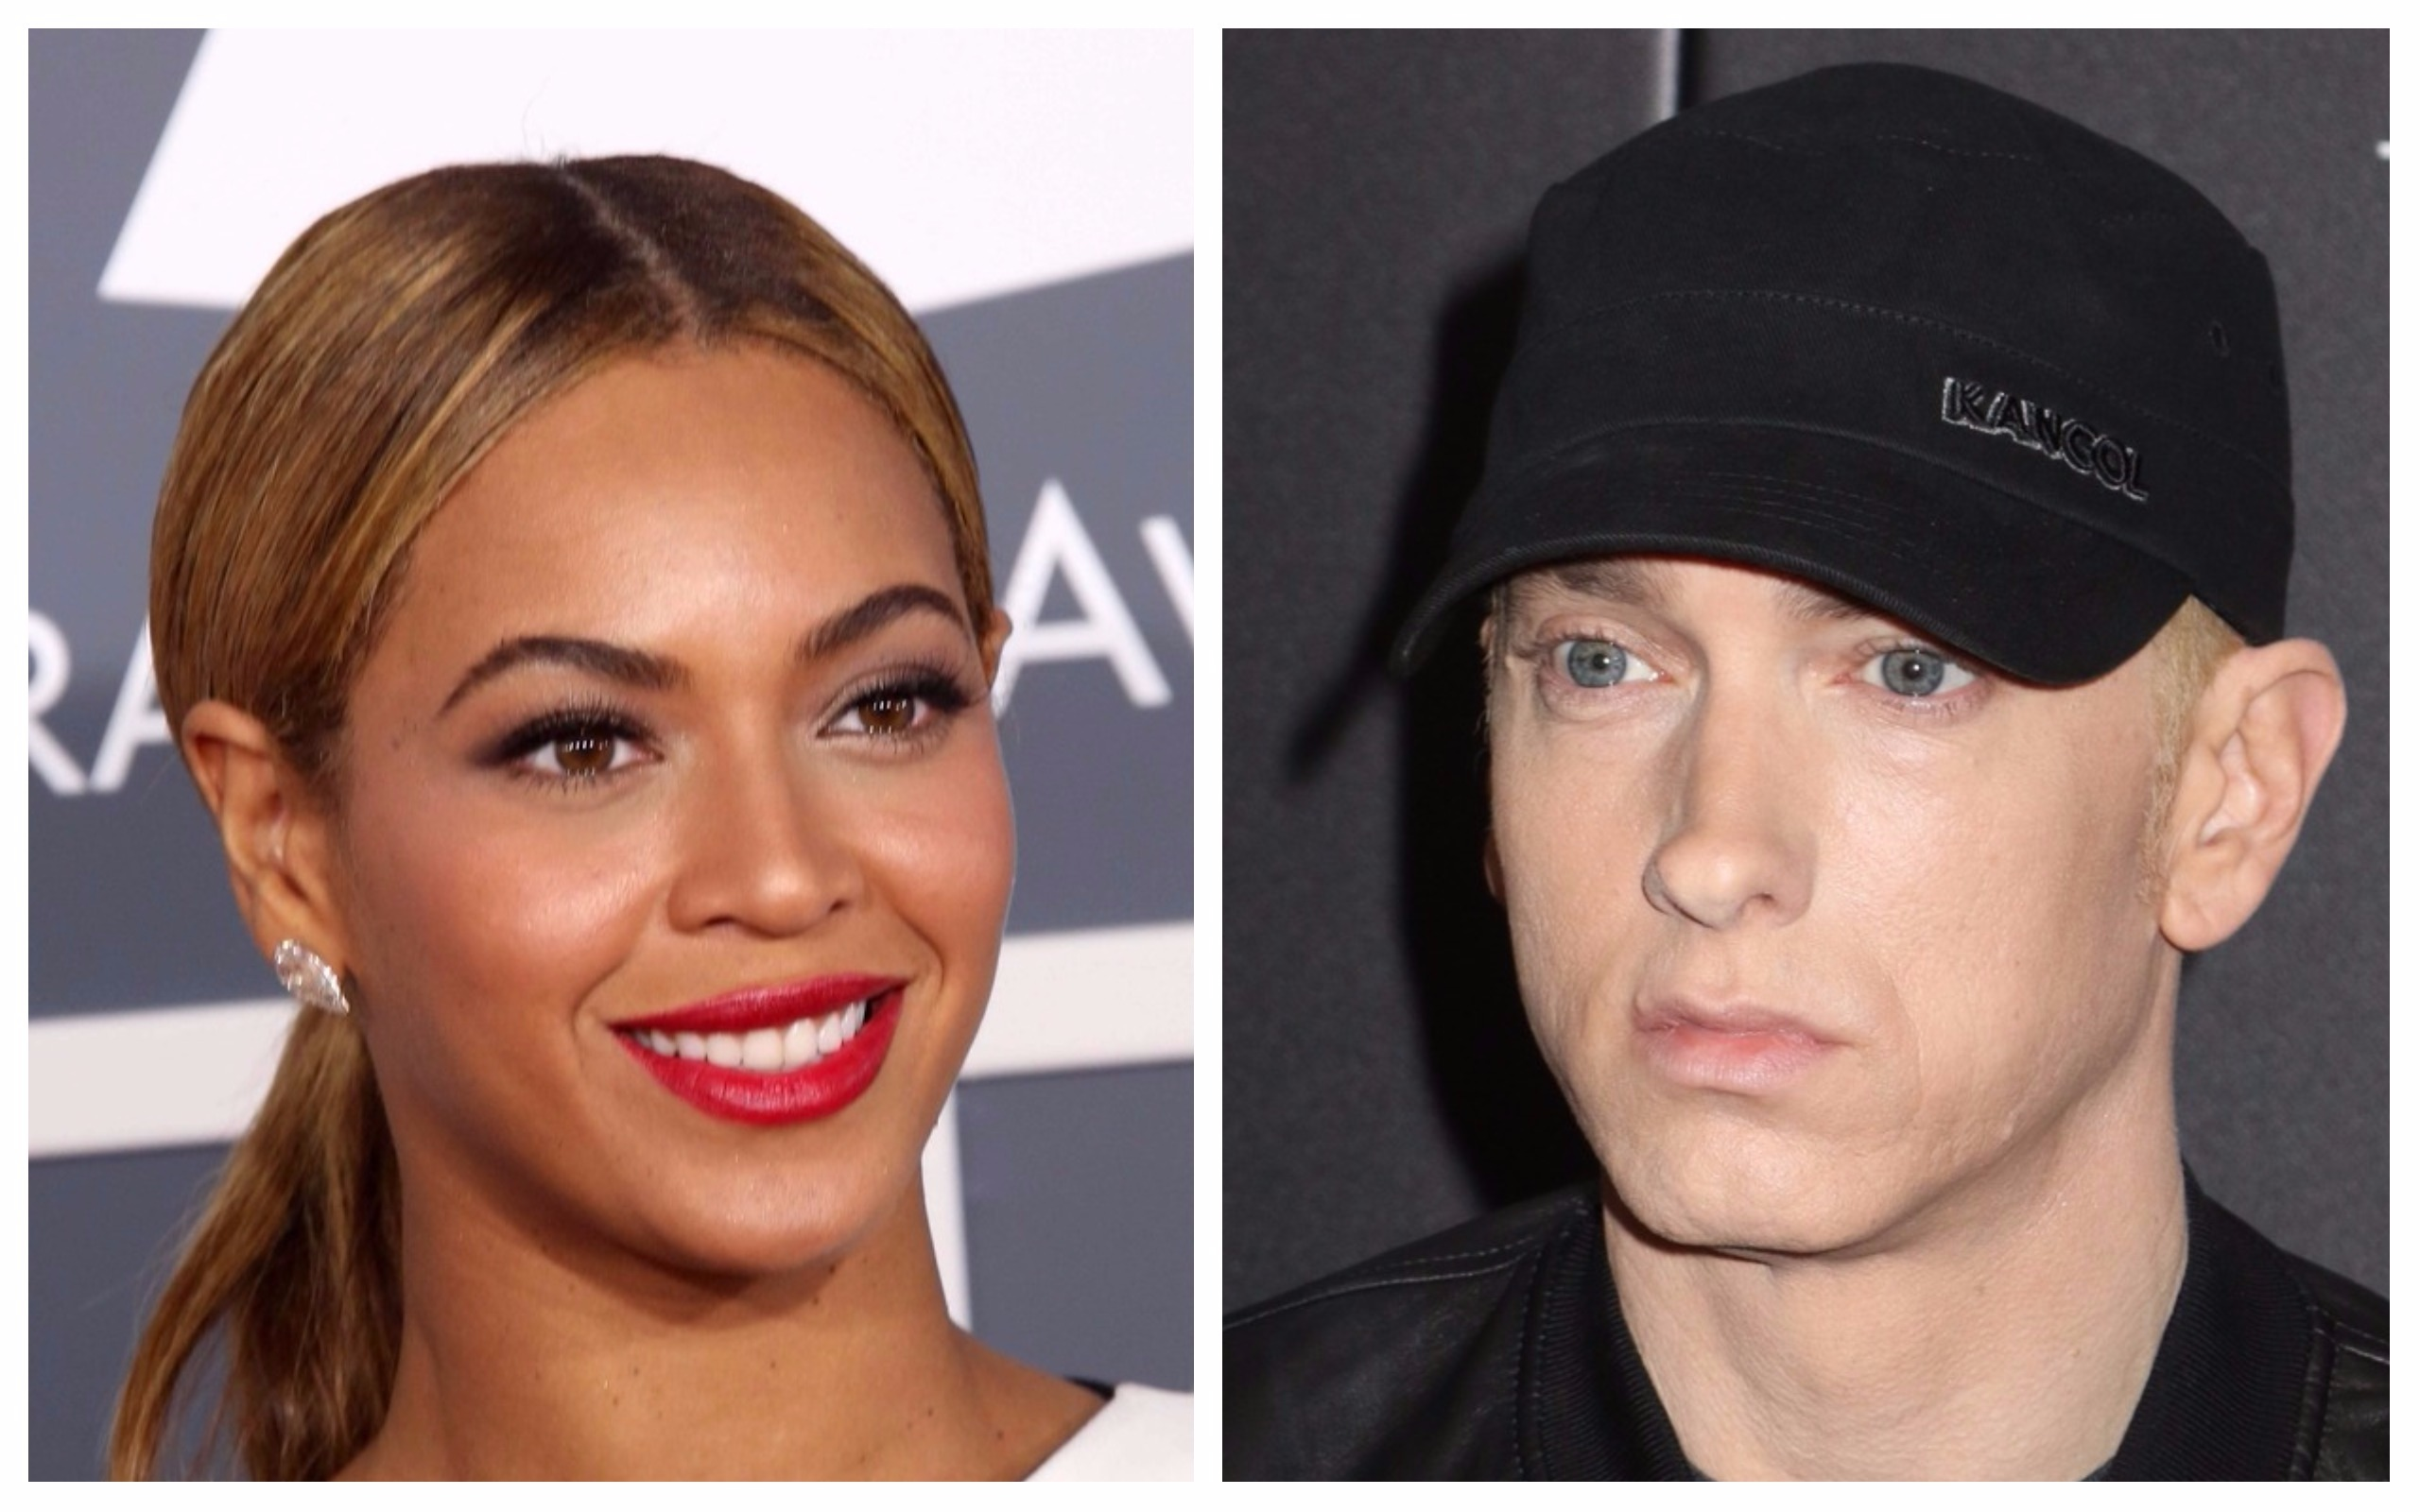 Foundation Calls Out Eminem and Beyoncé for Use of the Word 'retarded' in New Song, and to Use Their Celebrity to Stop Bullying of People with Disabilities